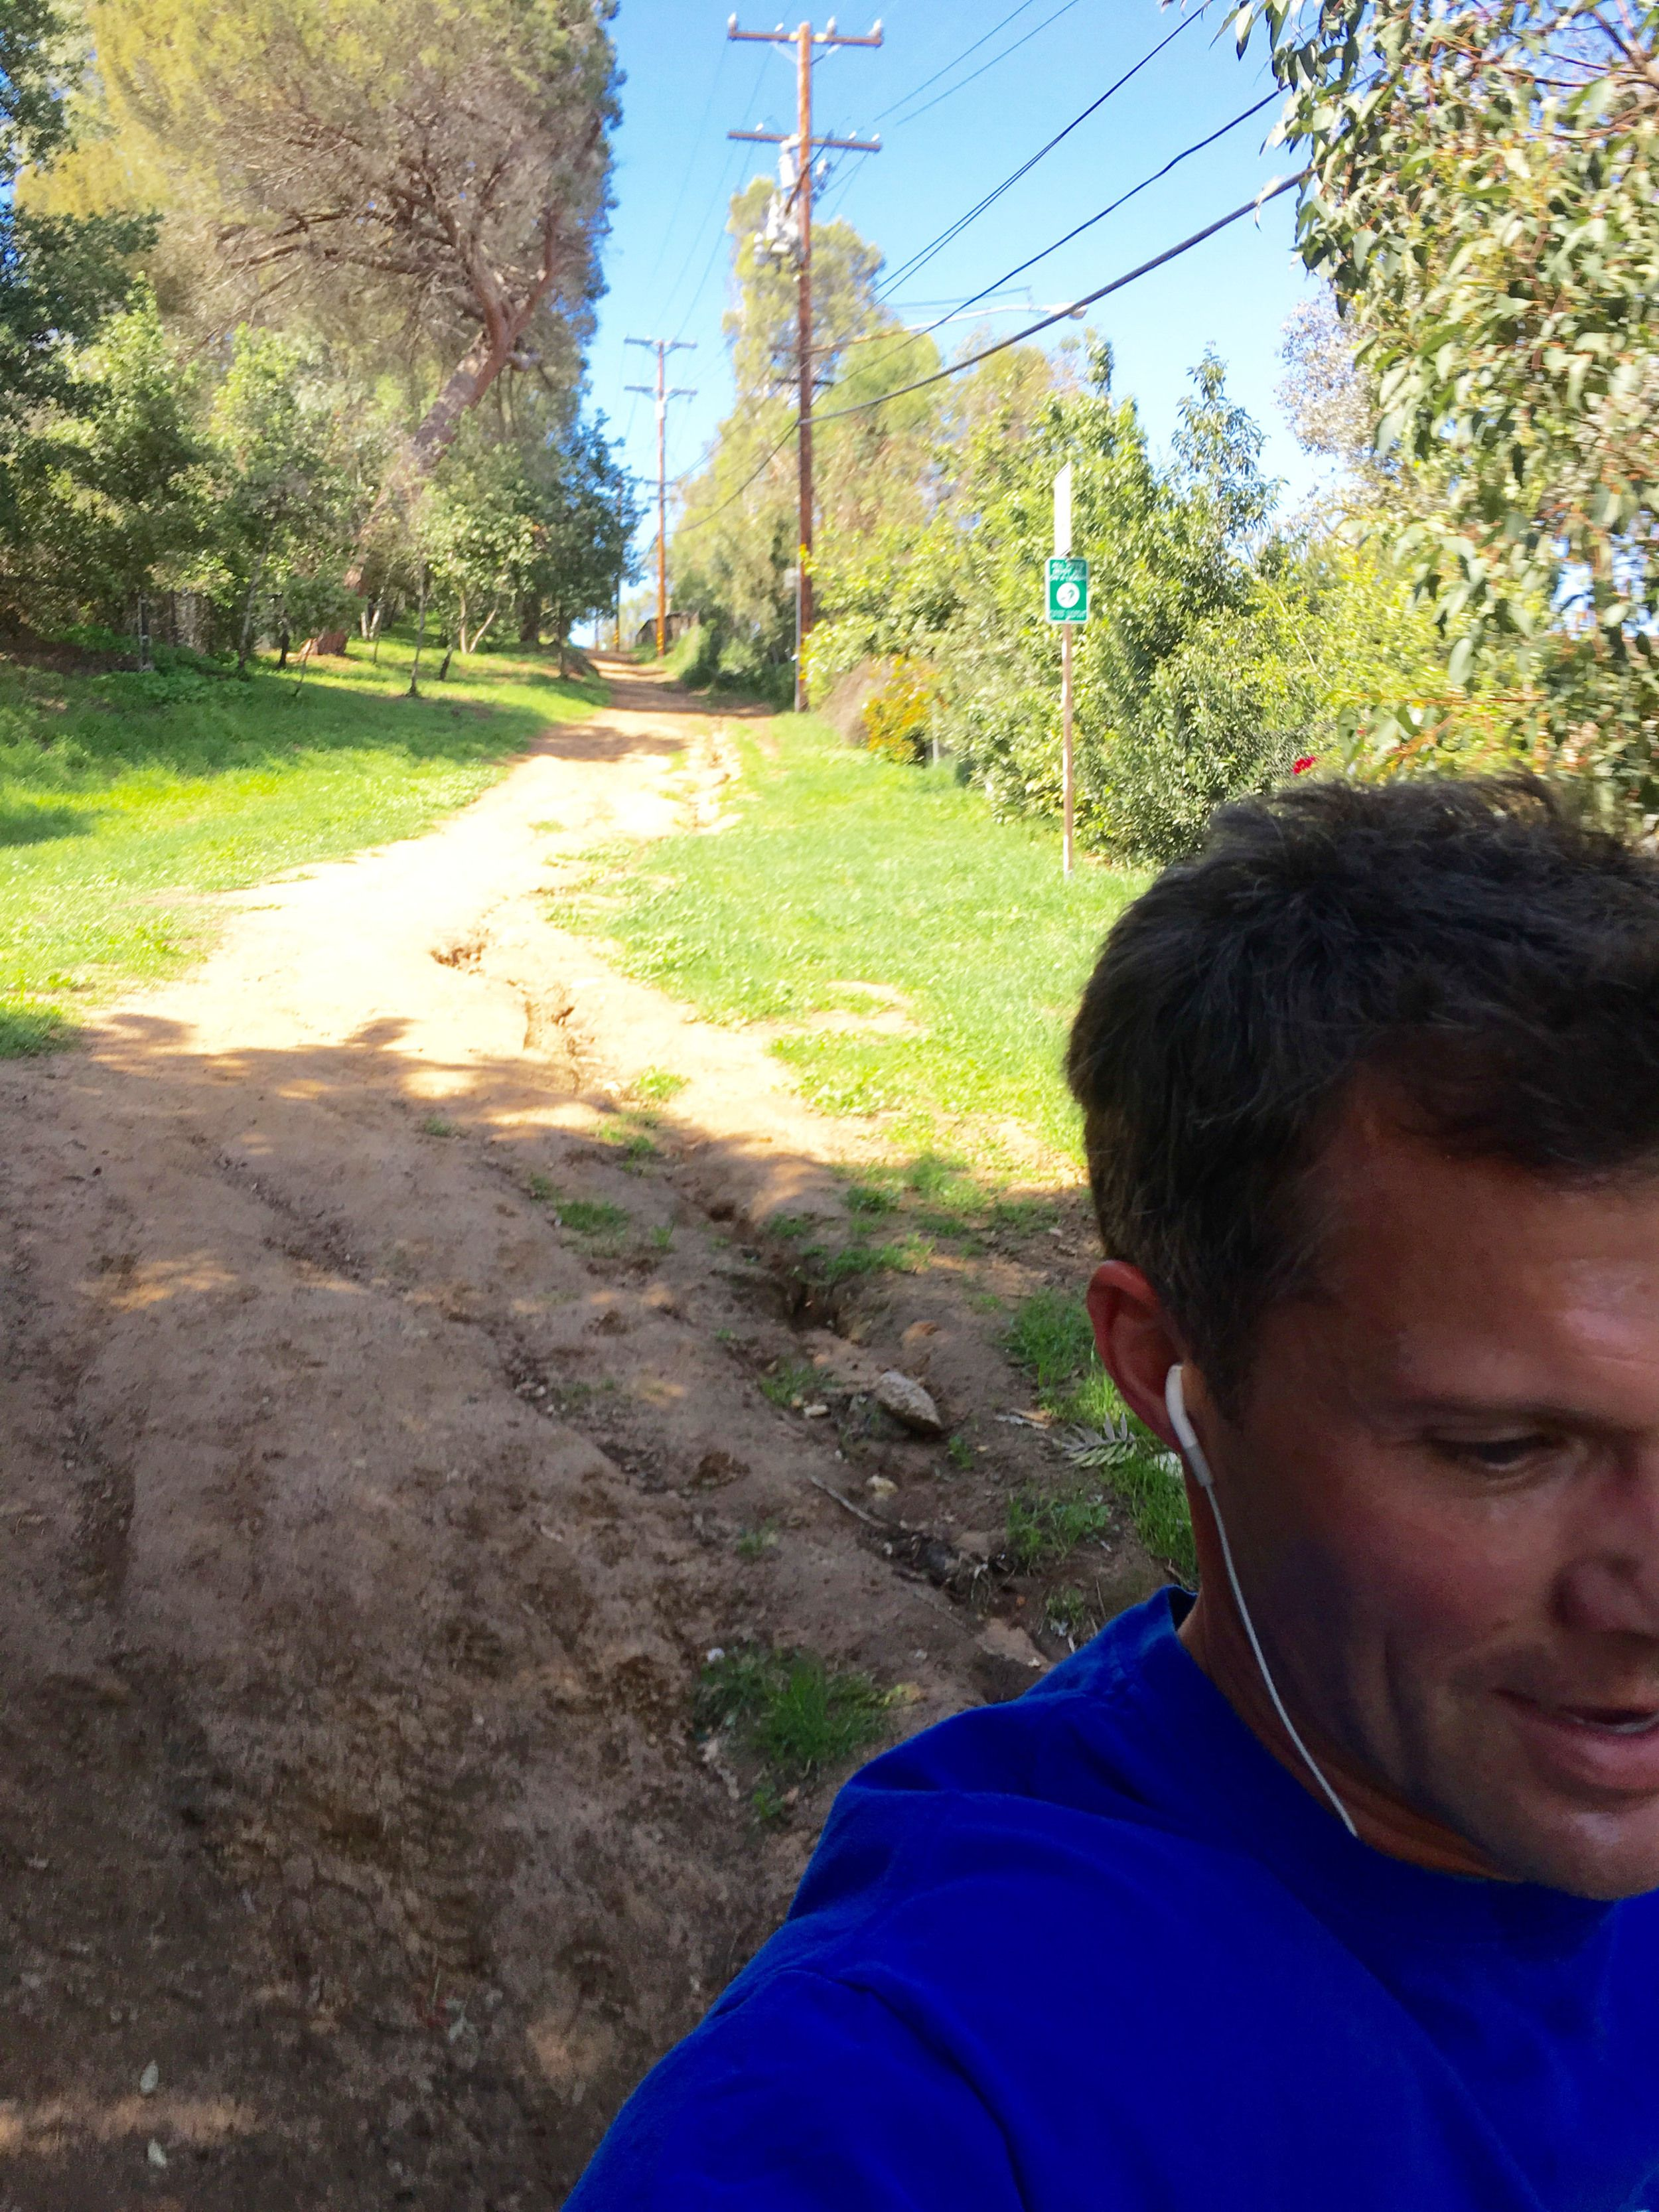 A good laugh today at my expense! Check out today's Weekly Fitness Tip to read about my battle with The Hill. #running #redondobeach #hills